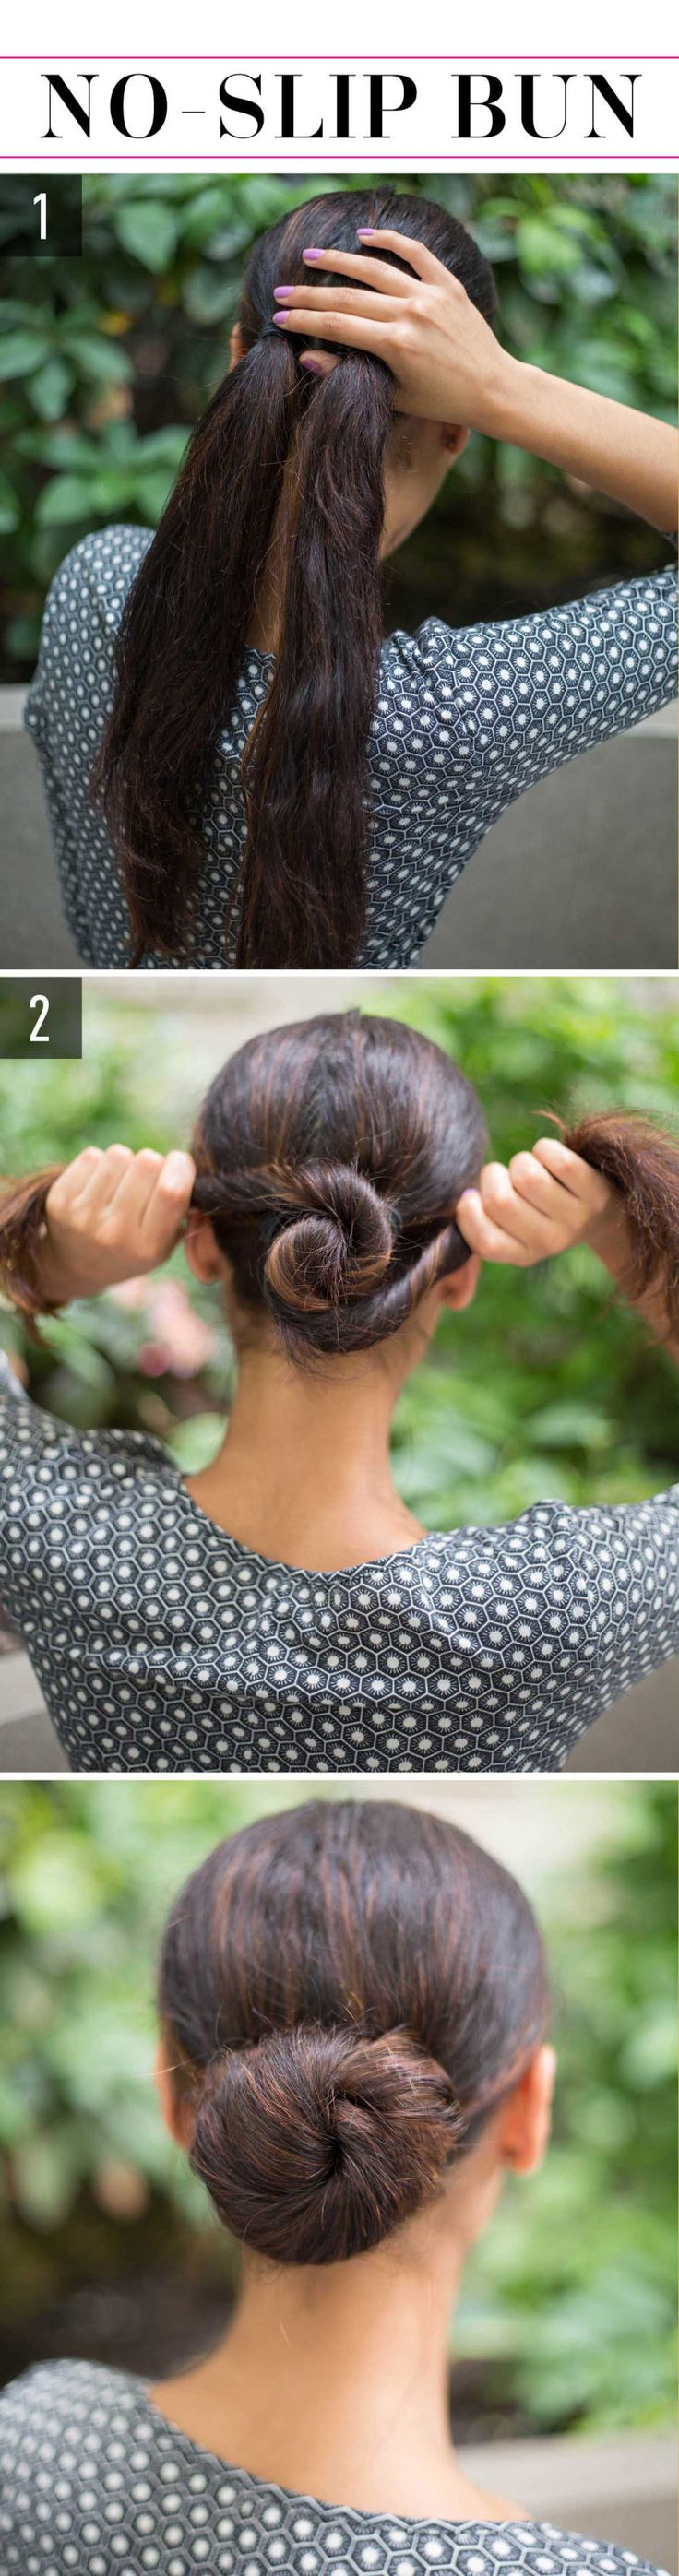 15 Super Easy Hairstyles For Lazy Girls Who Can T Even Lazy Girl Hairstyles Hair Styles Medium Hair Styles